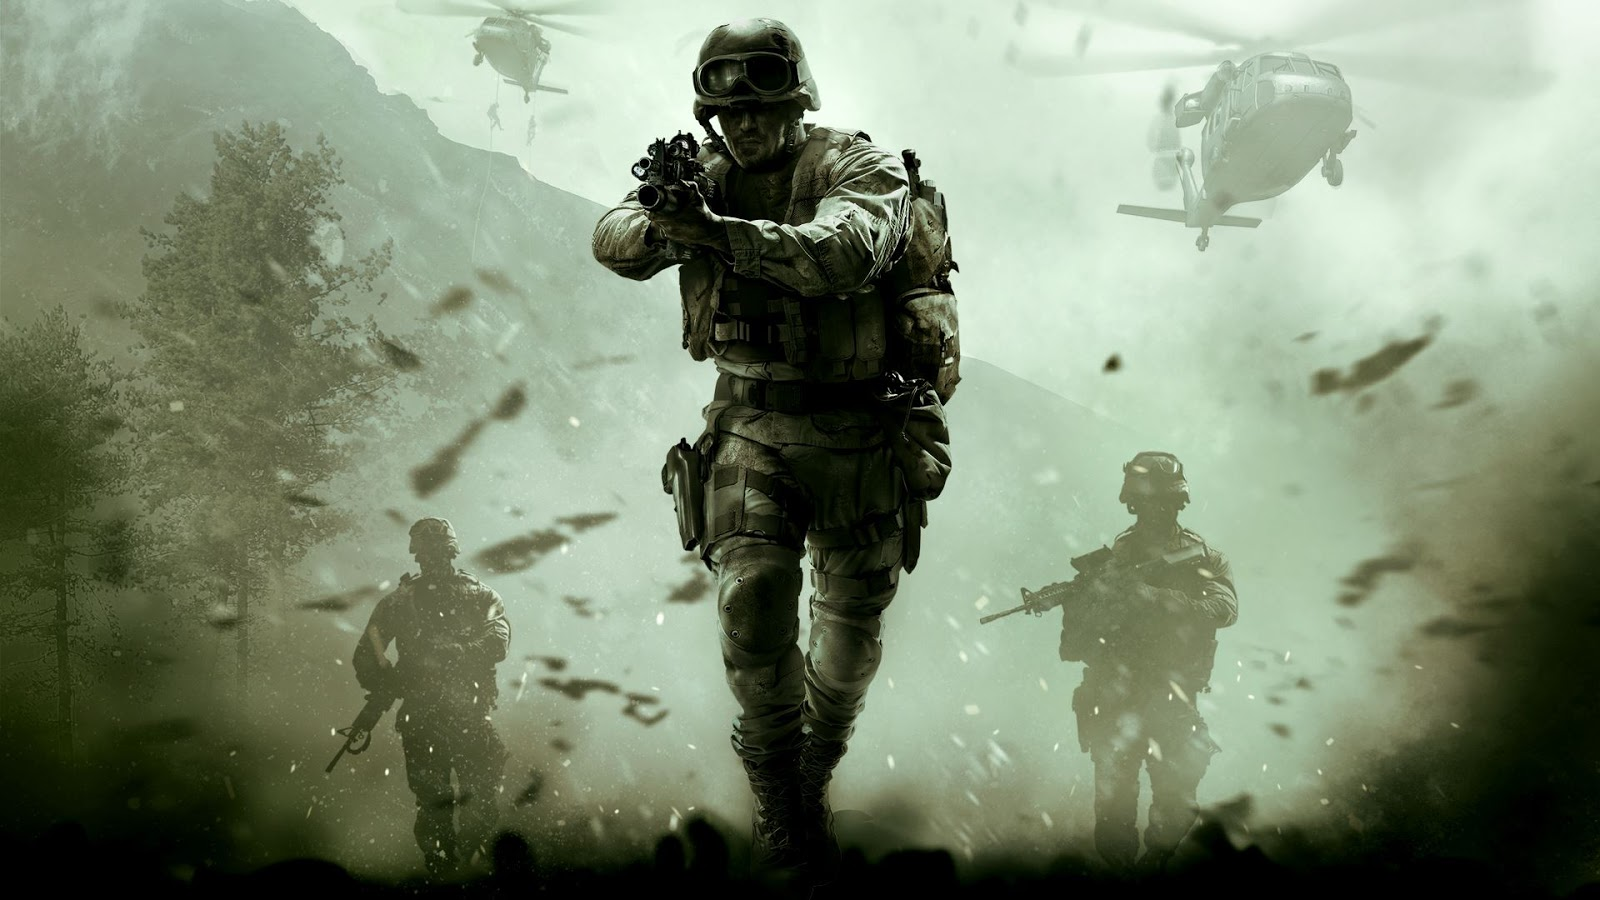 Activision Reveals 2017 Call of DutyVideo Game Being Developed By Sledgehammer Games.